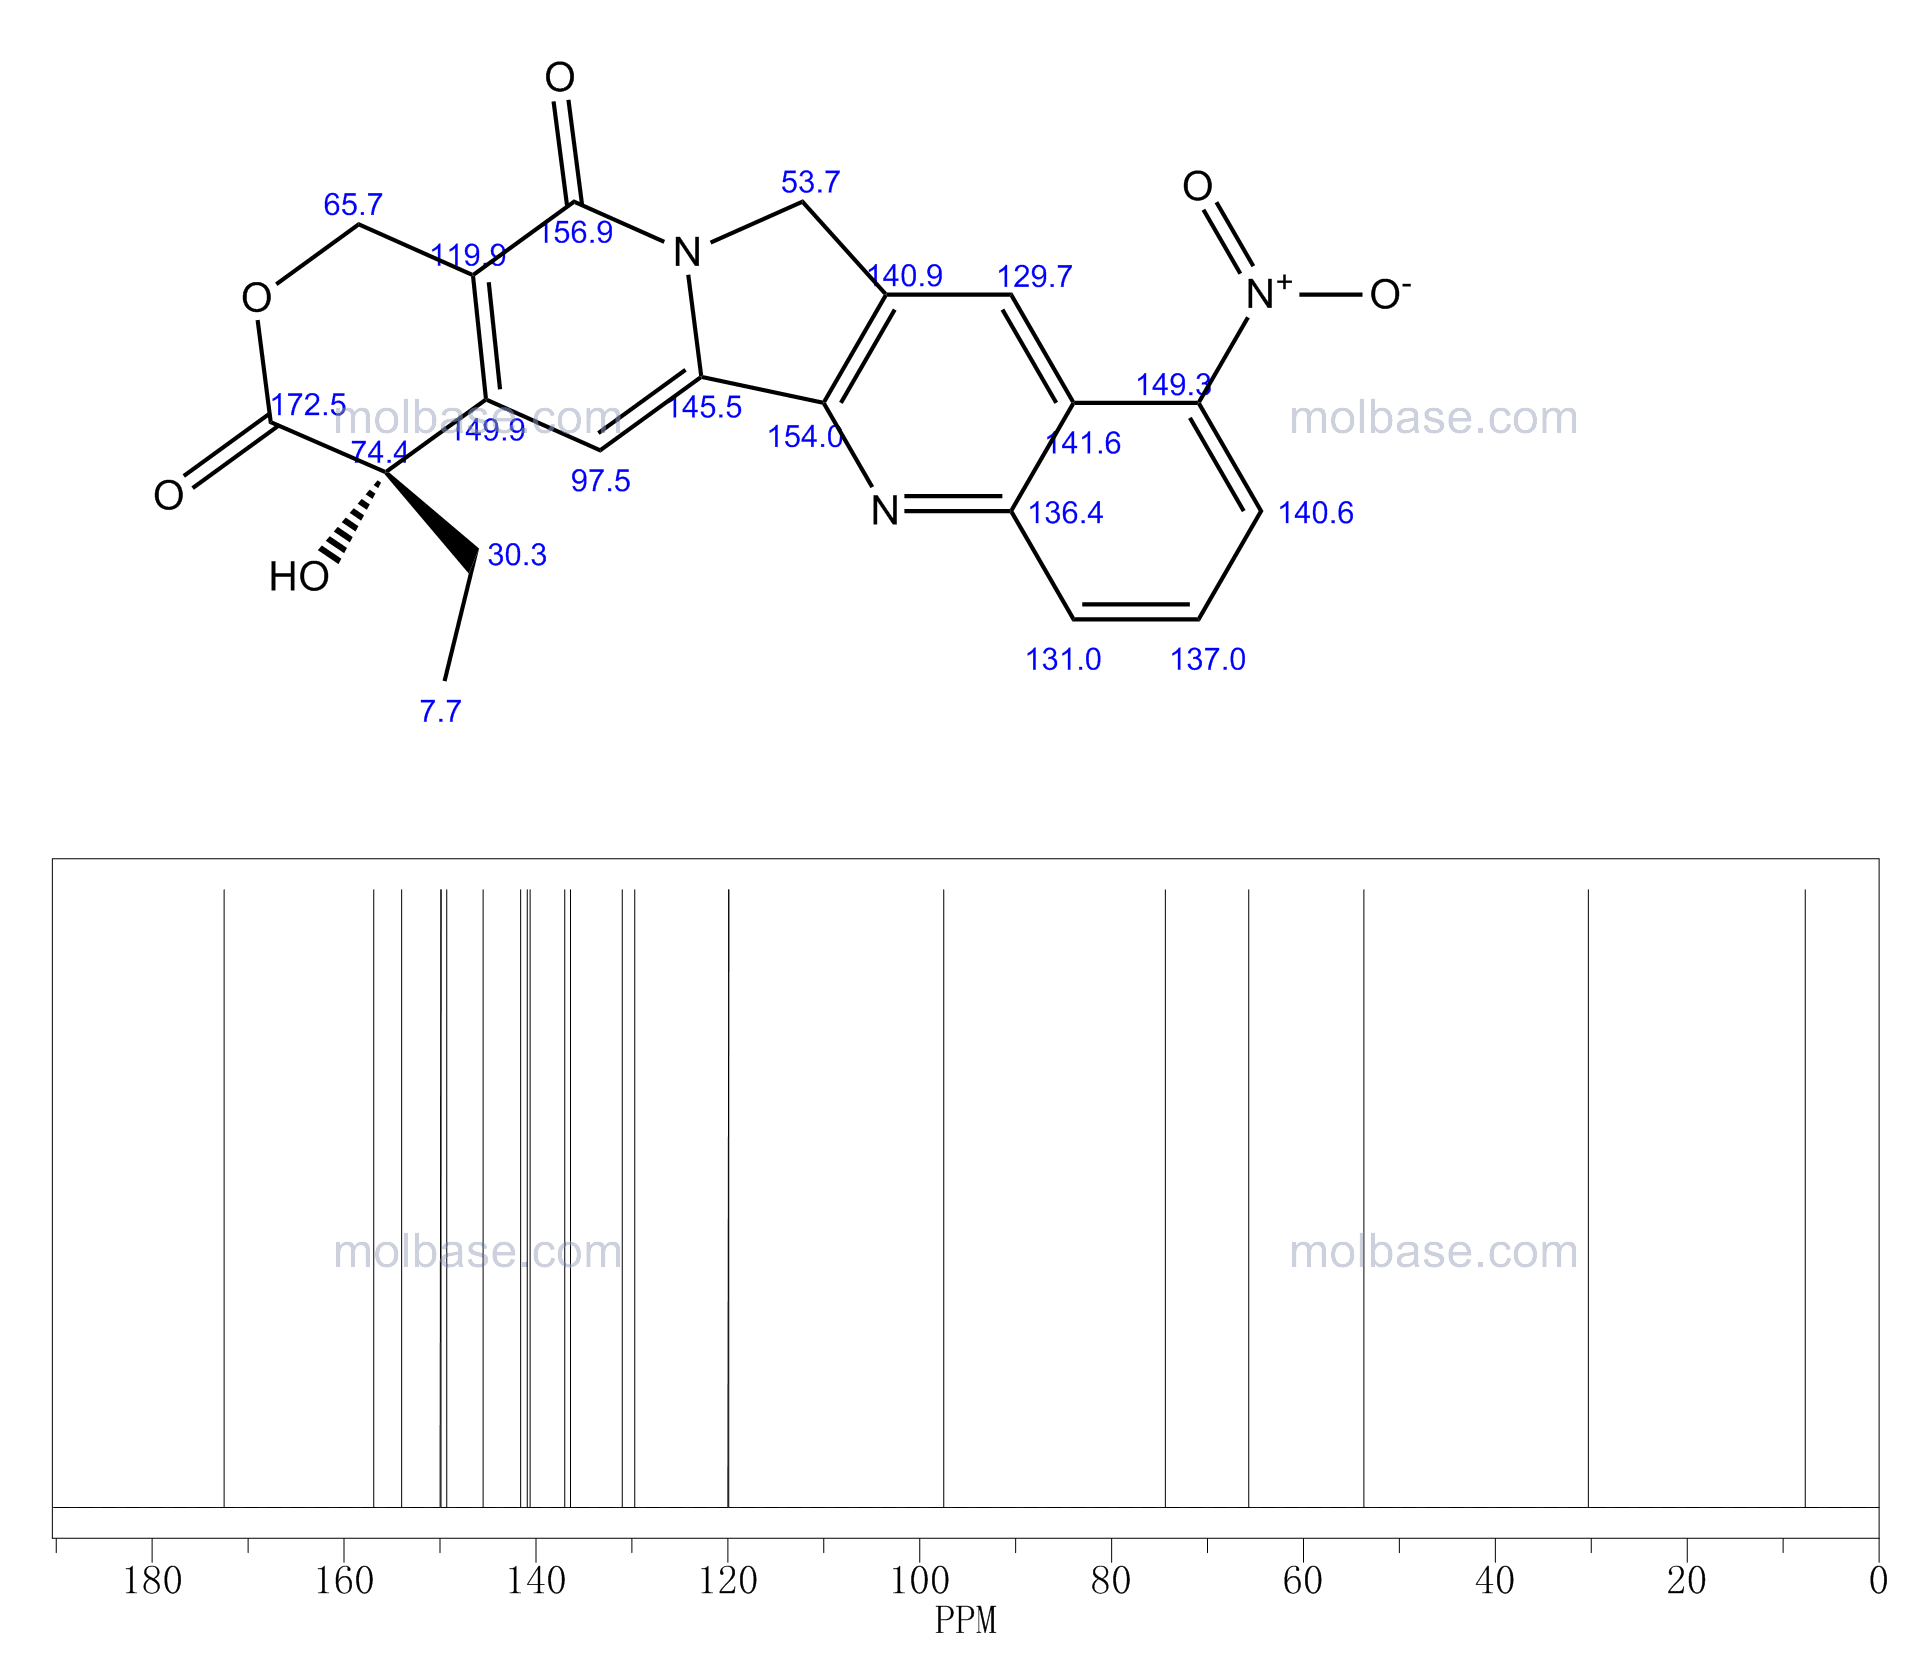 9-Nitrocamptothecin NMR spectra analysis, Chemical CAS NO. 91421-42-0 NMR spectral analysis, 9-Nitrocamptothecin C-NMR spectrum